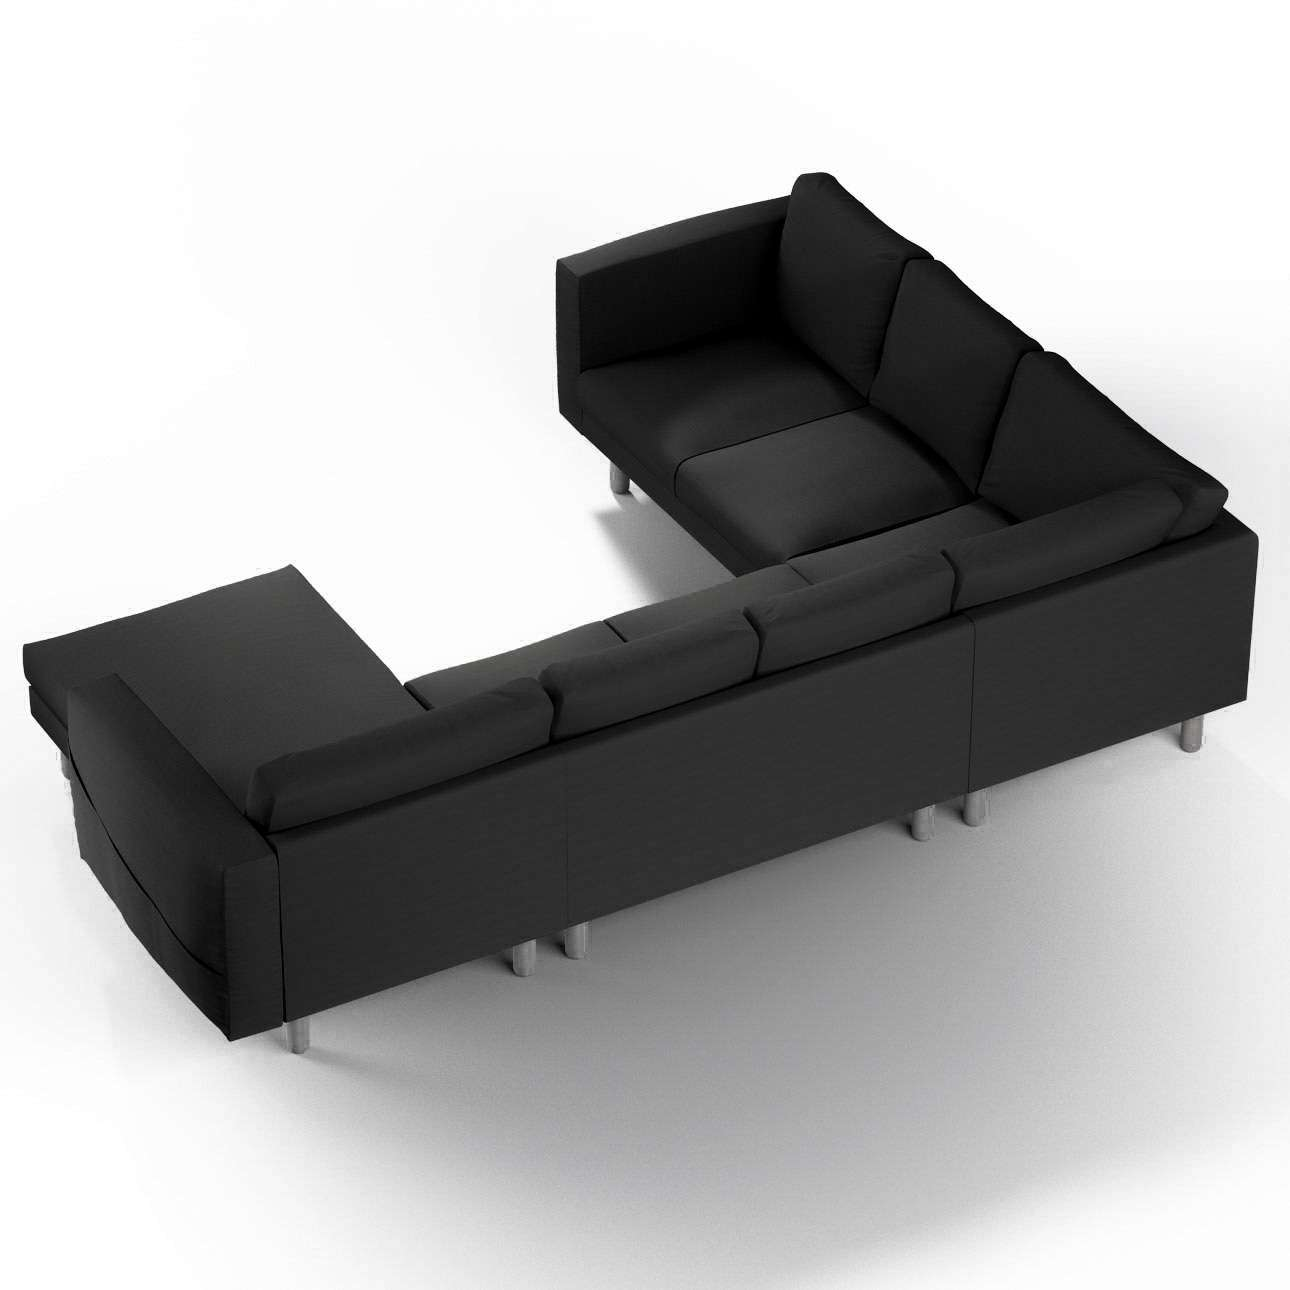 norsborg bezug f r 5 sitzer ecksofa mit recamiere shadow grey dekoria. Black Bedroom Furniture Sets. Home Design Ideas